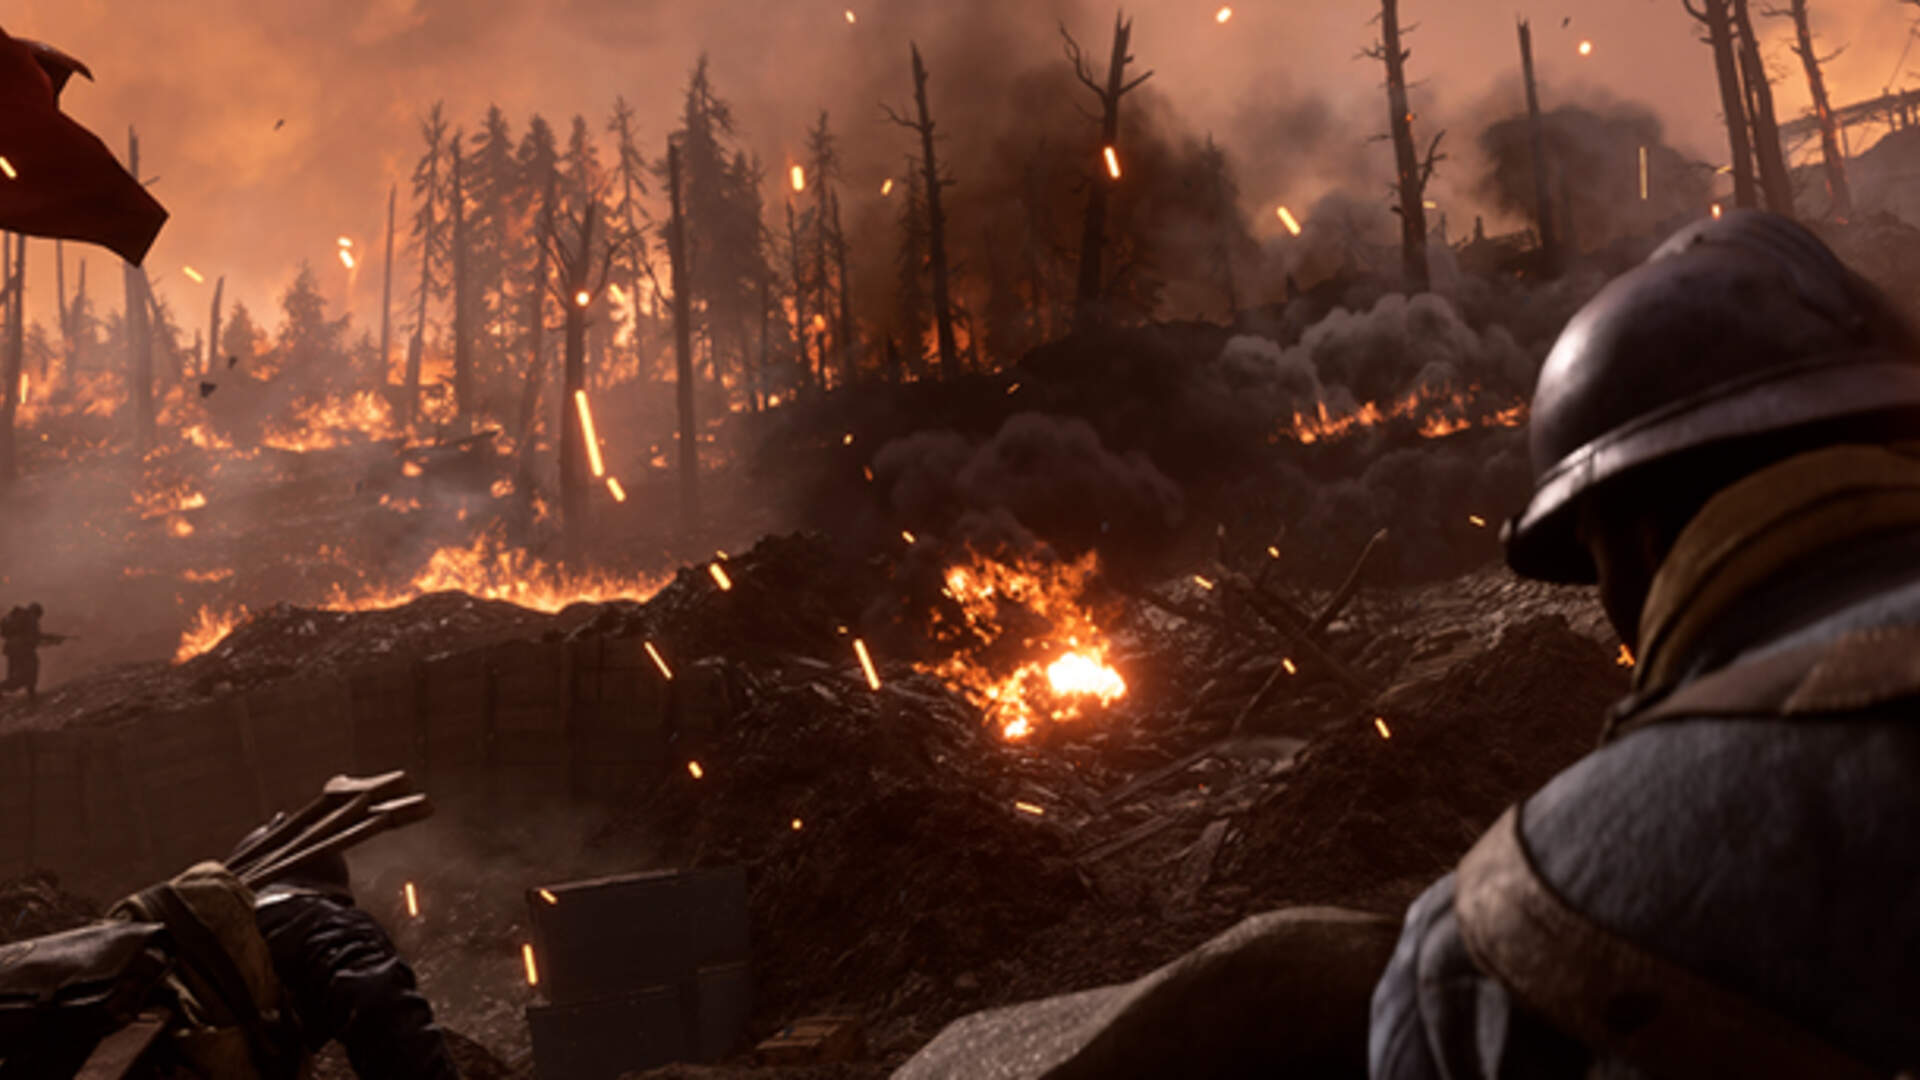 Battlefield 1 Is Available for Free on Origin and EA Access